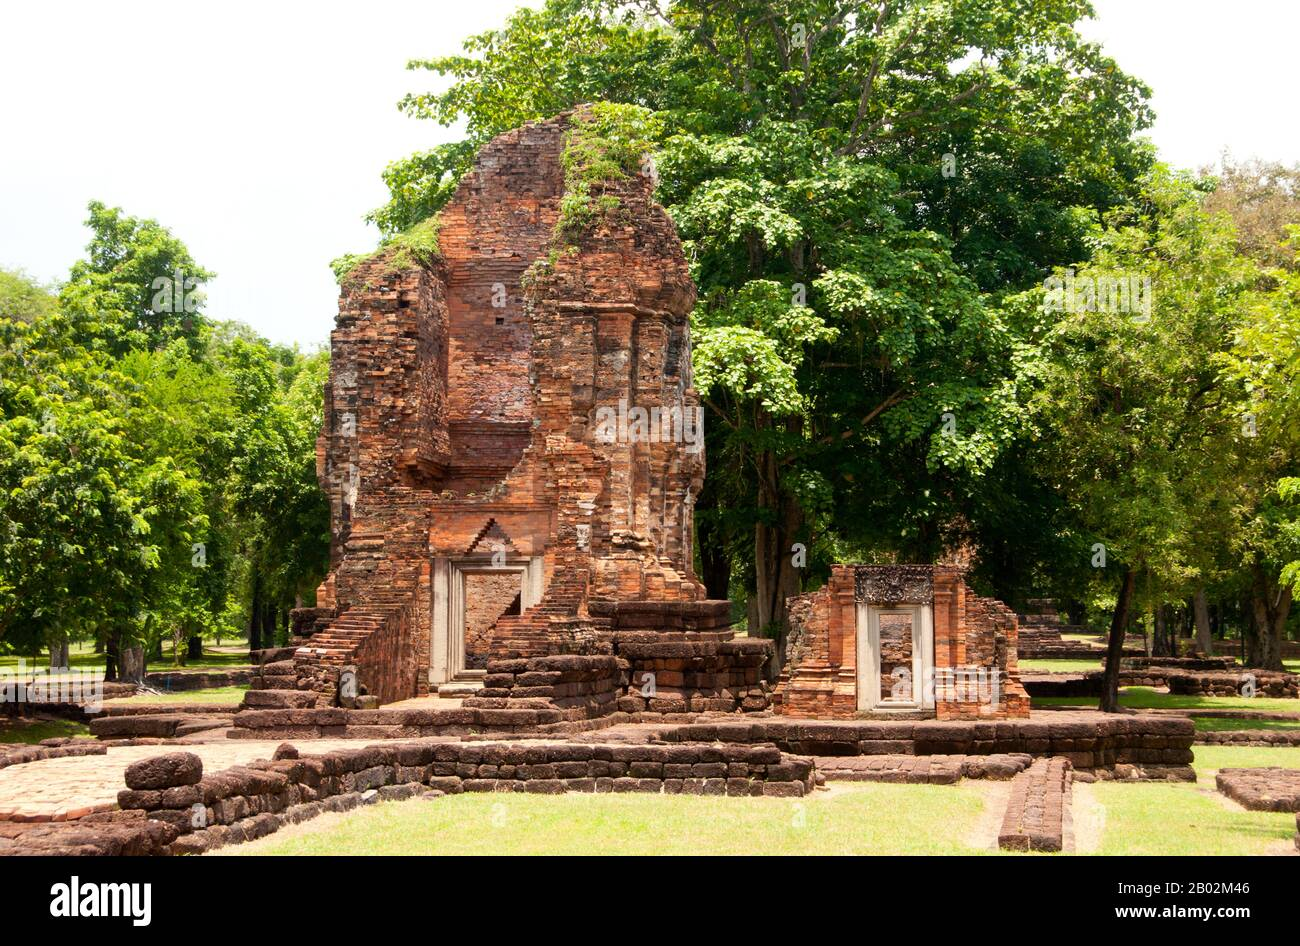 Si Thep, also Sri Thep, (7th – 14th century CE) is an ancient ruined town in Northeast Thailand. Many architectural structures still remain to indicate its past prosperity. It was once the centre of contact between the Dvaravati Kingdom in the central plain basin of Thailand and the Khmer Kingdom in the Northeast.  A twin- city, there were over one hundred ancient sites all built with bricks and laterite. There are also remains of several ponds spread out all over the area. Most of the ancient relics recovered are architectural by nature such as elaborate lintels and sema stones. A few of the Stock Photo